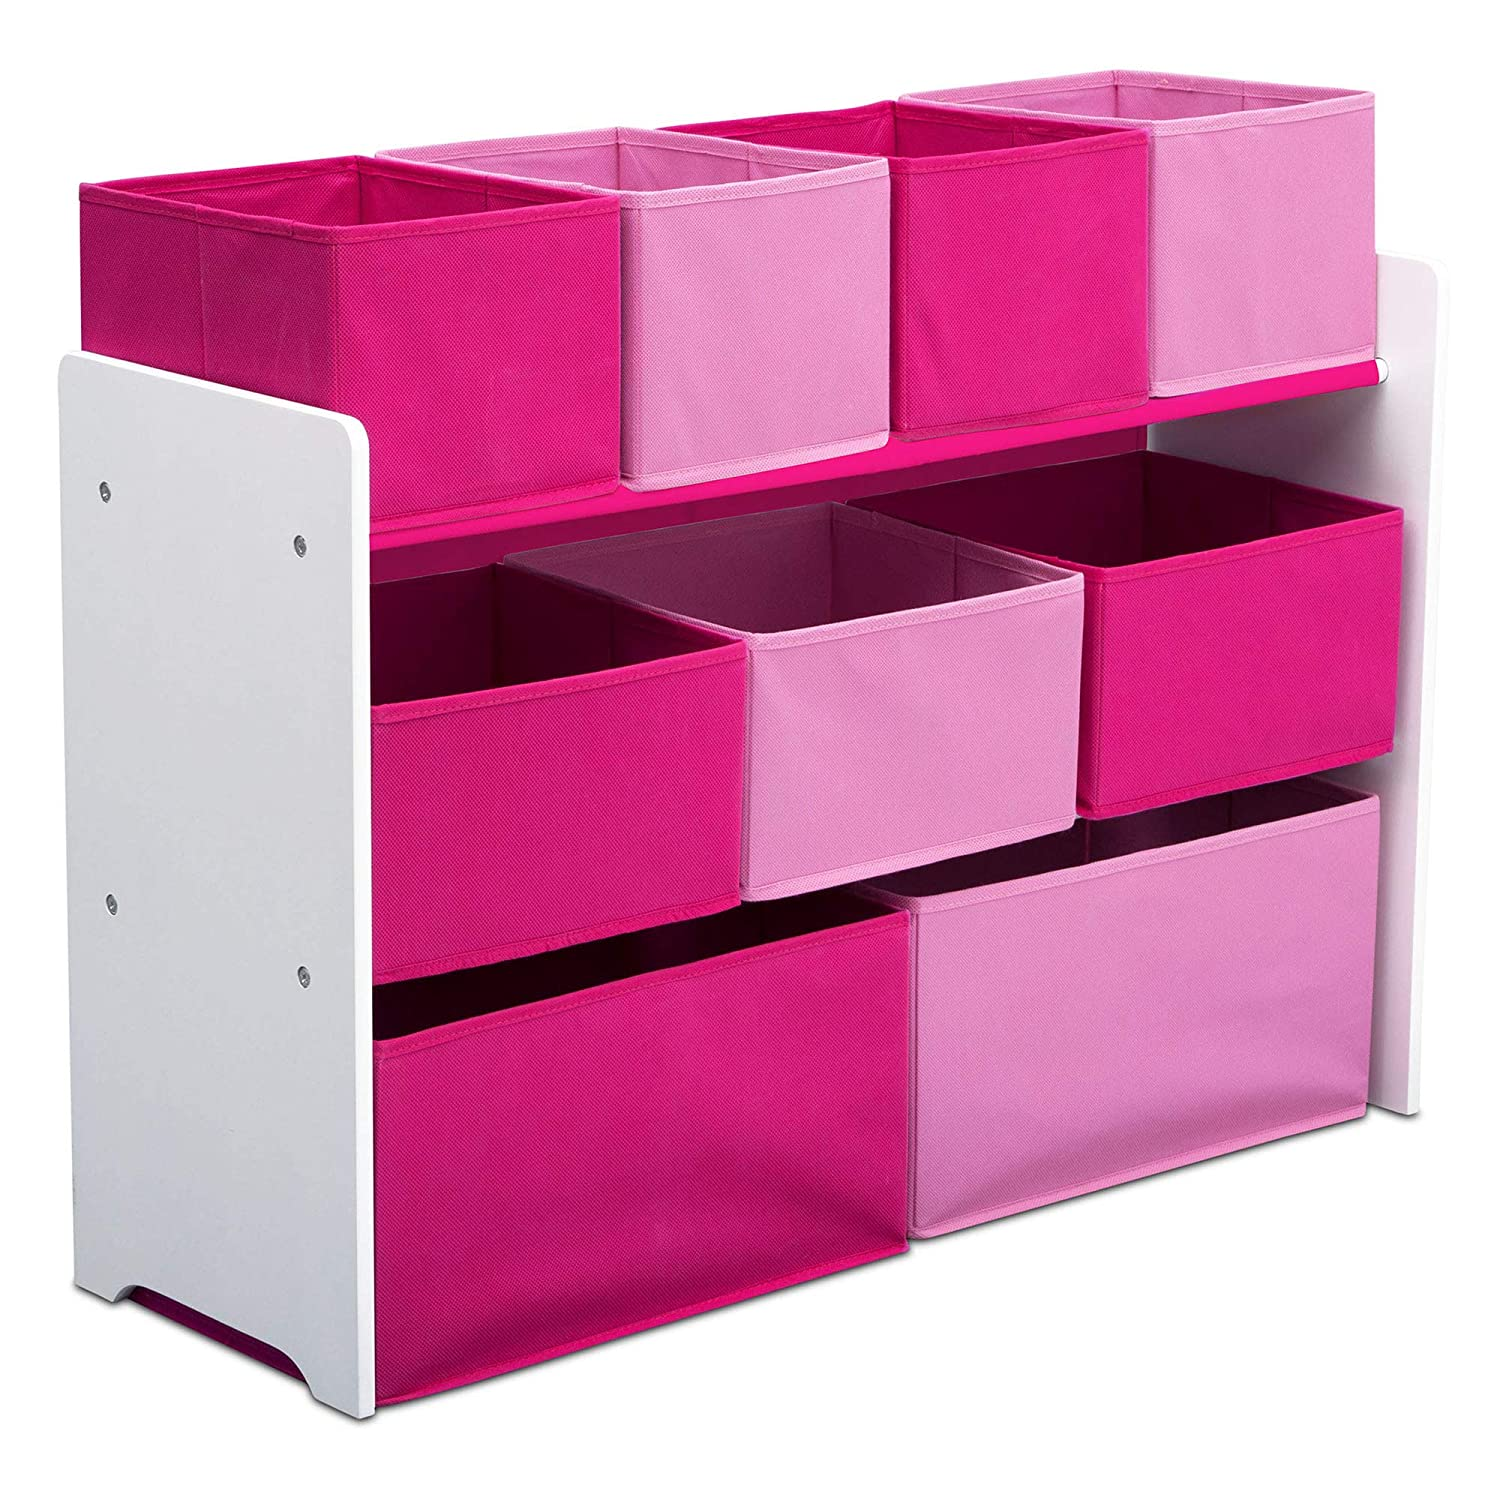 step2-fun-time-room-organizer